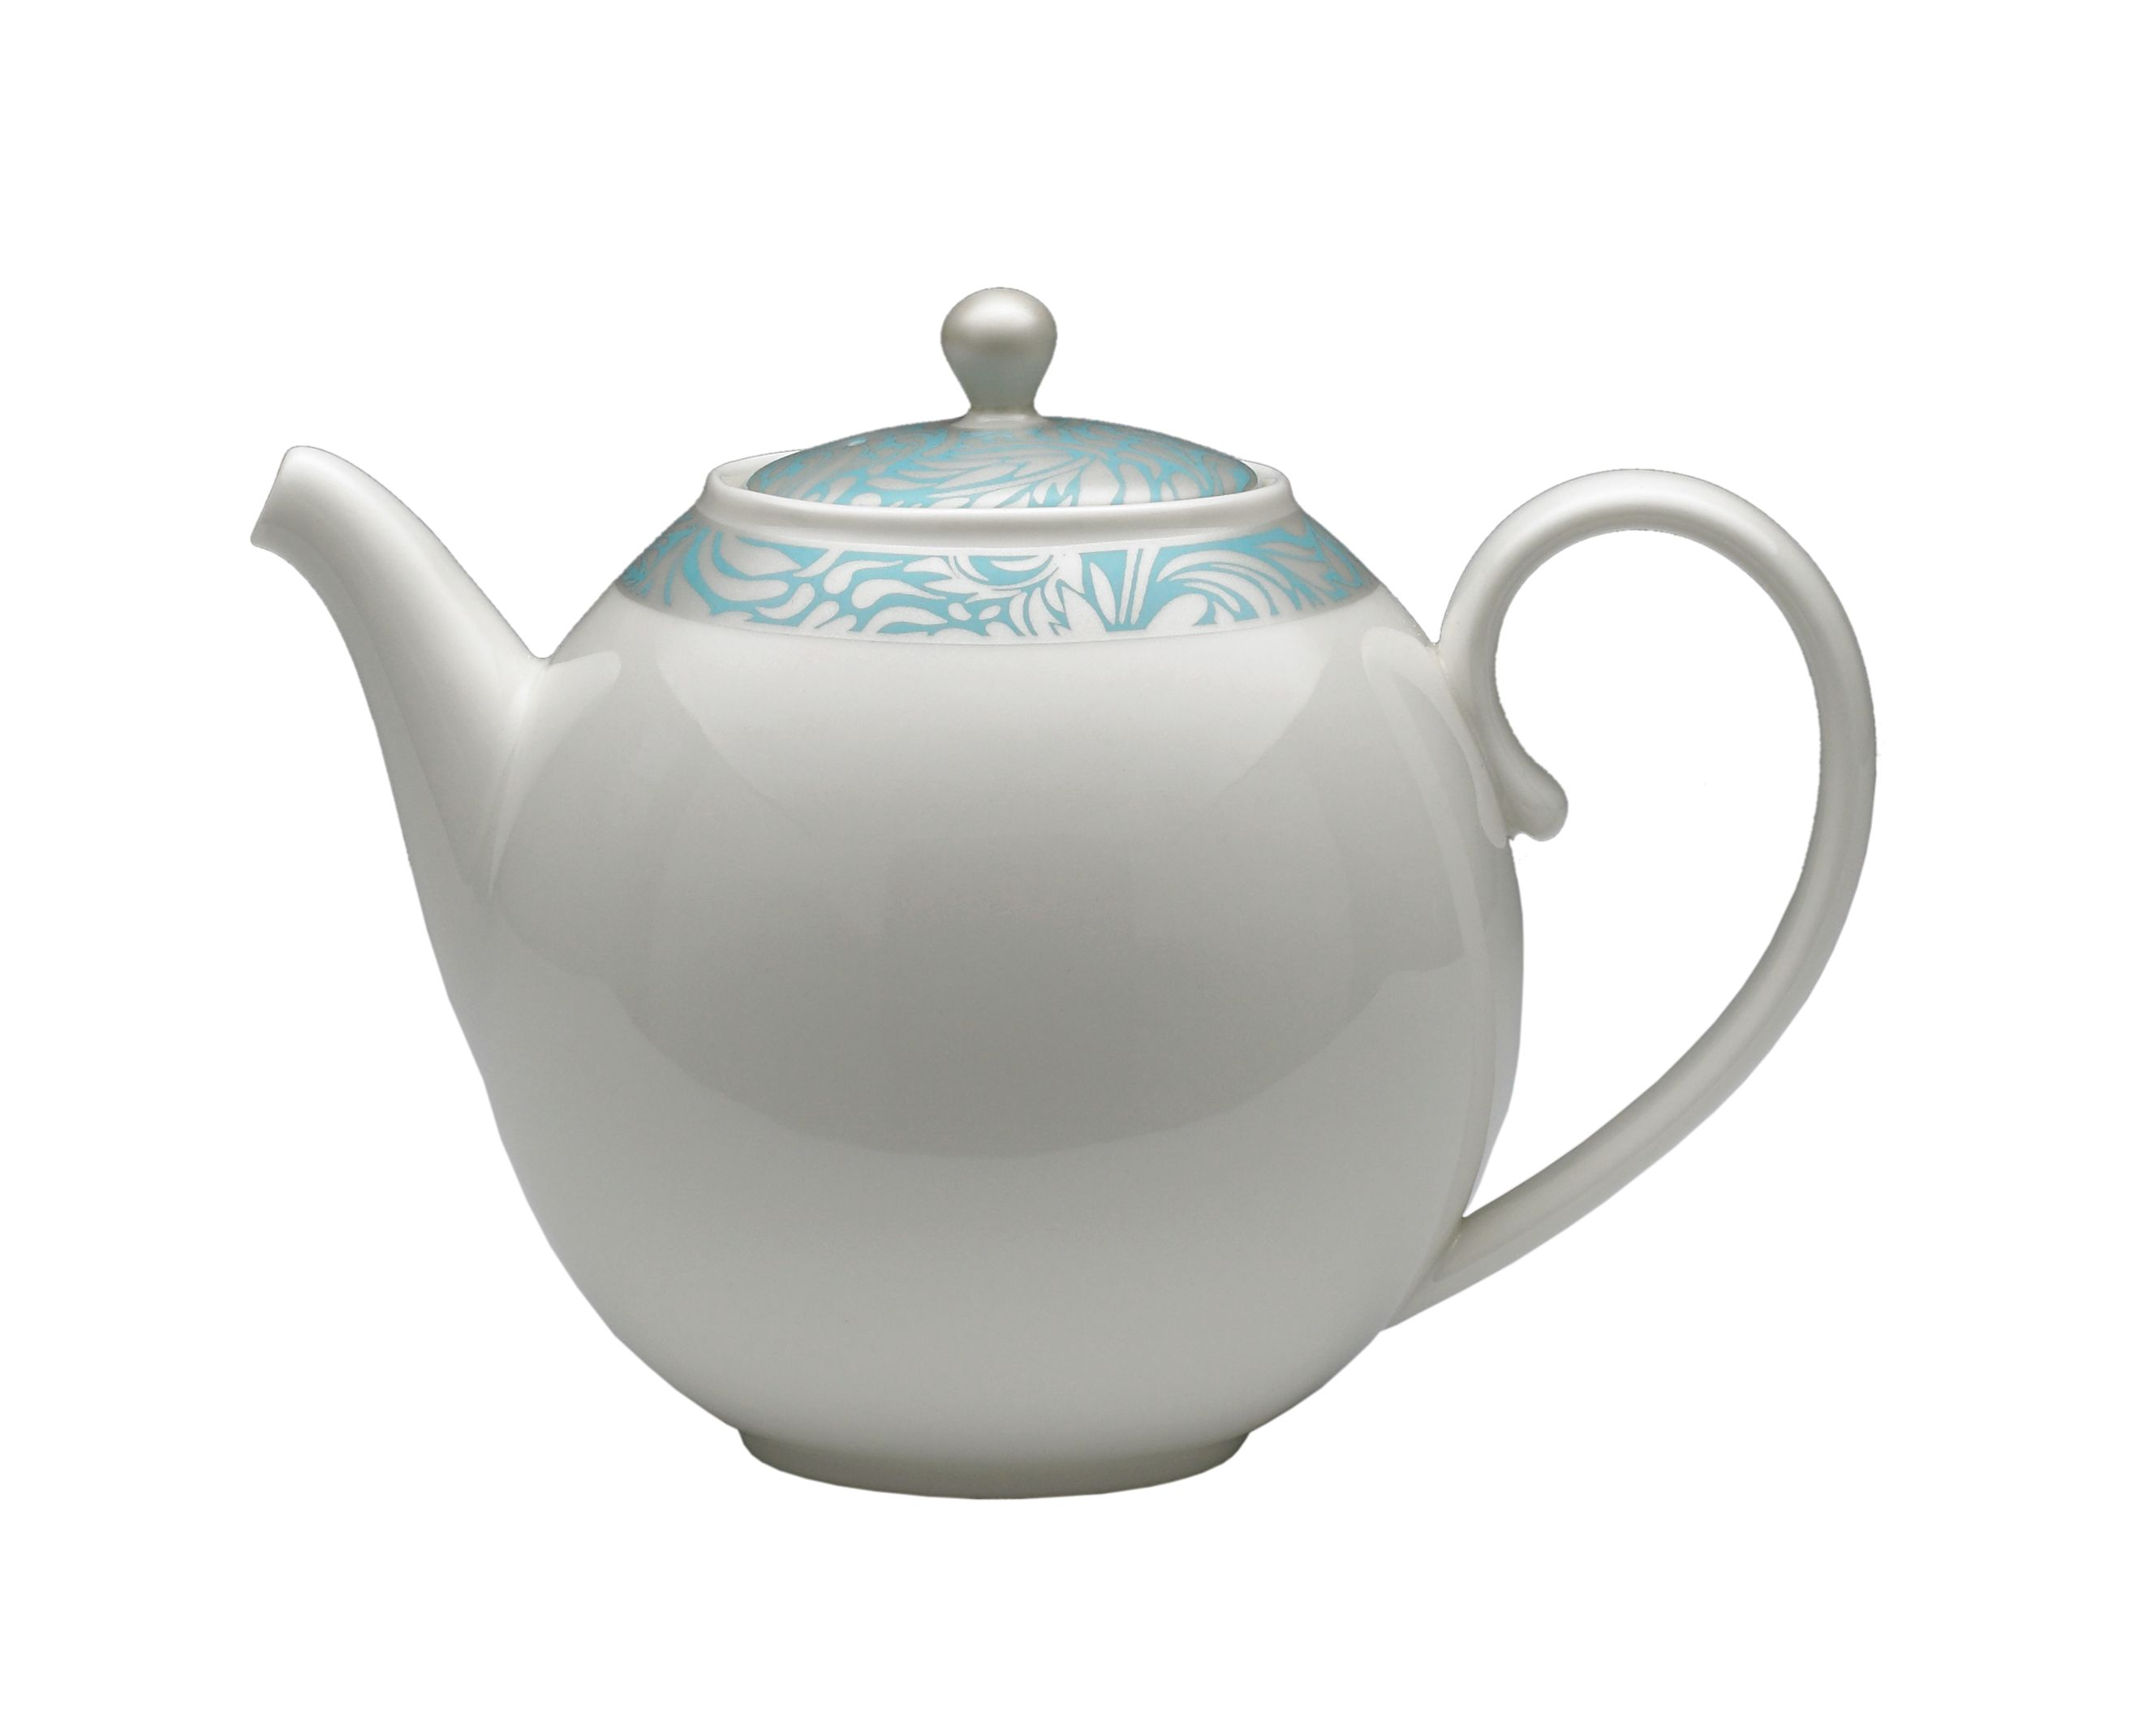 Monsoon Lucille teal teapot